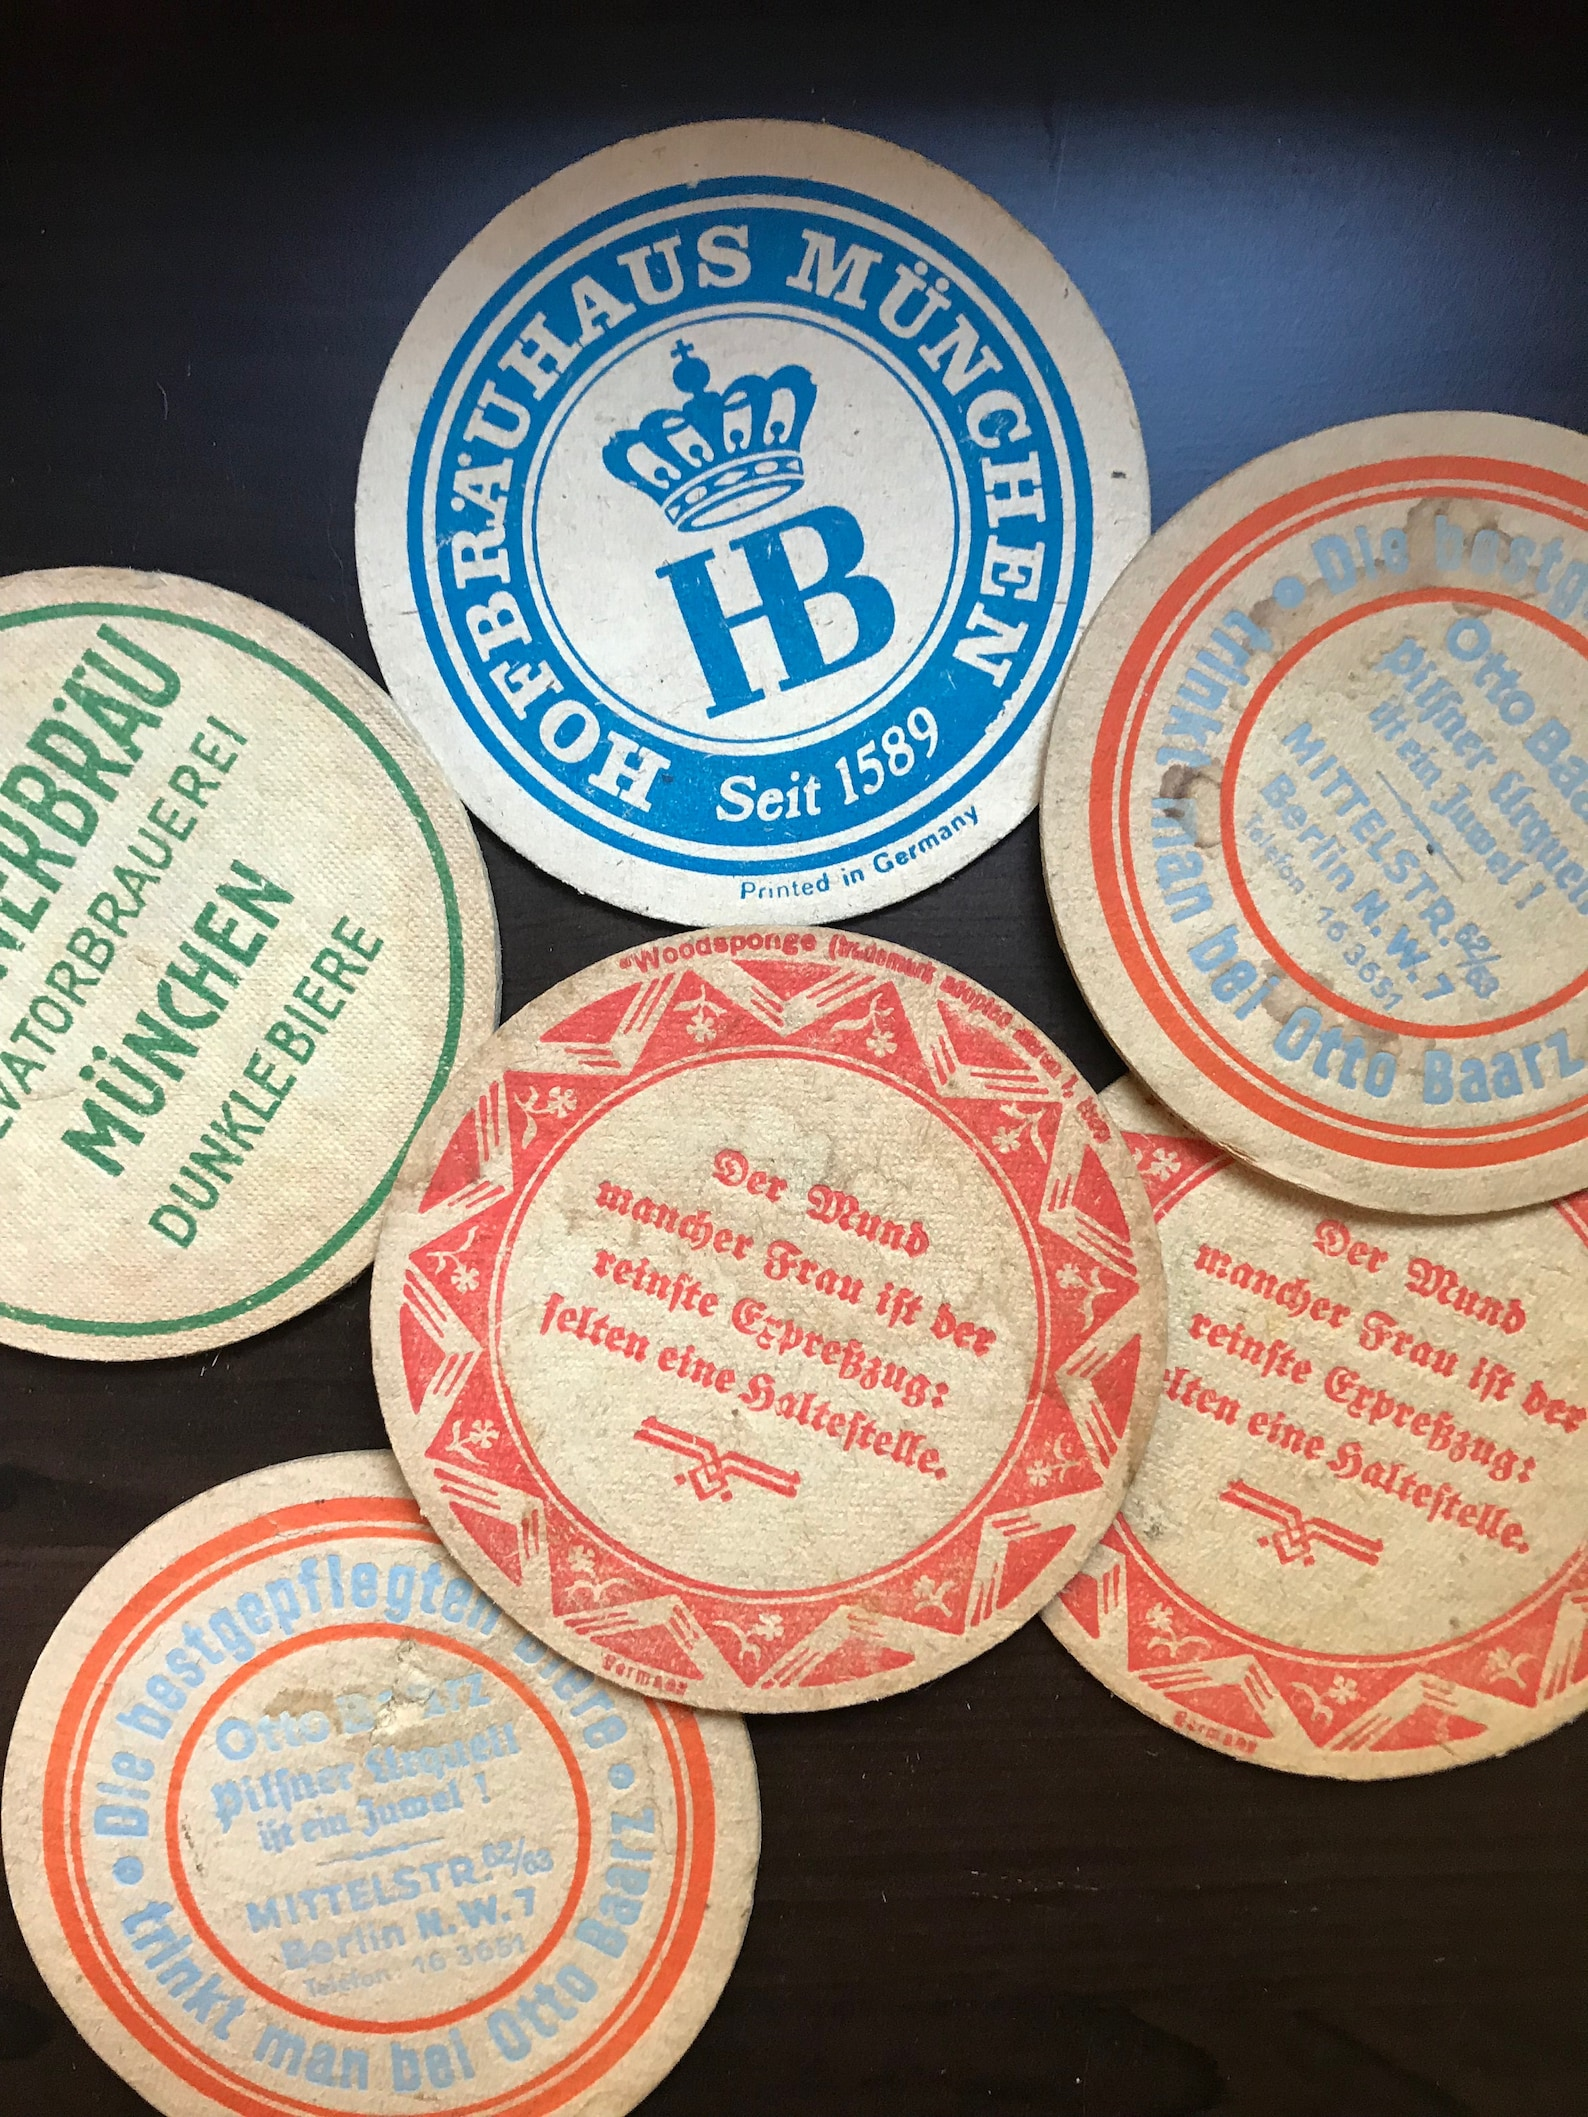 Lot of 6 vintage pressed paper Oktoberfest beer coasters, Bierdeckel, varied Berlin and Munich